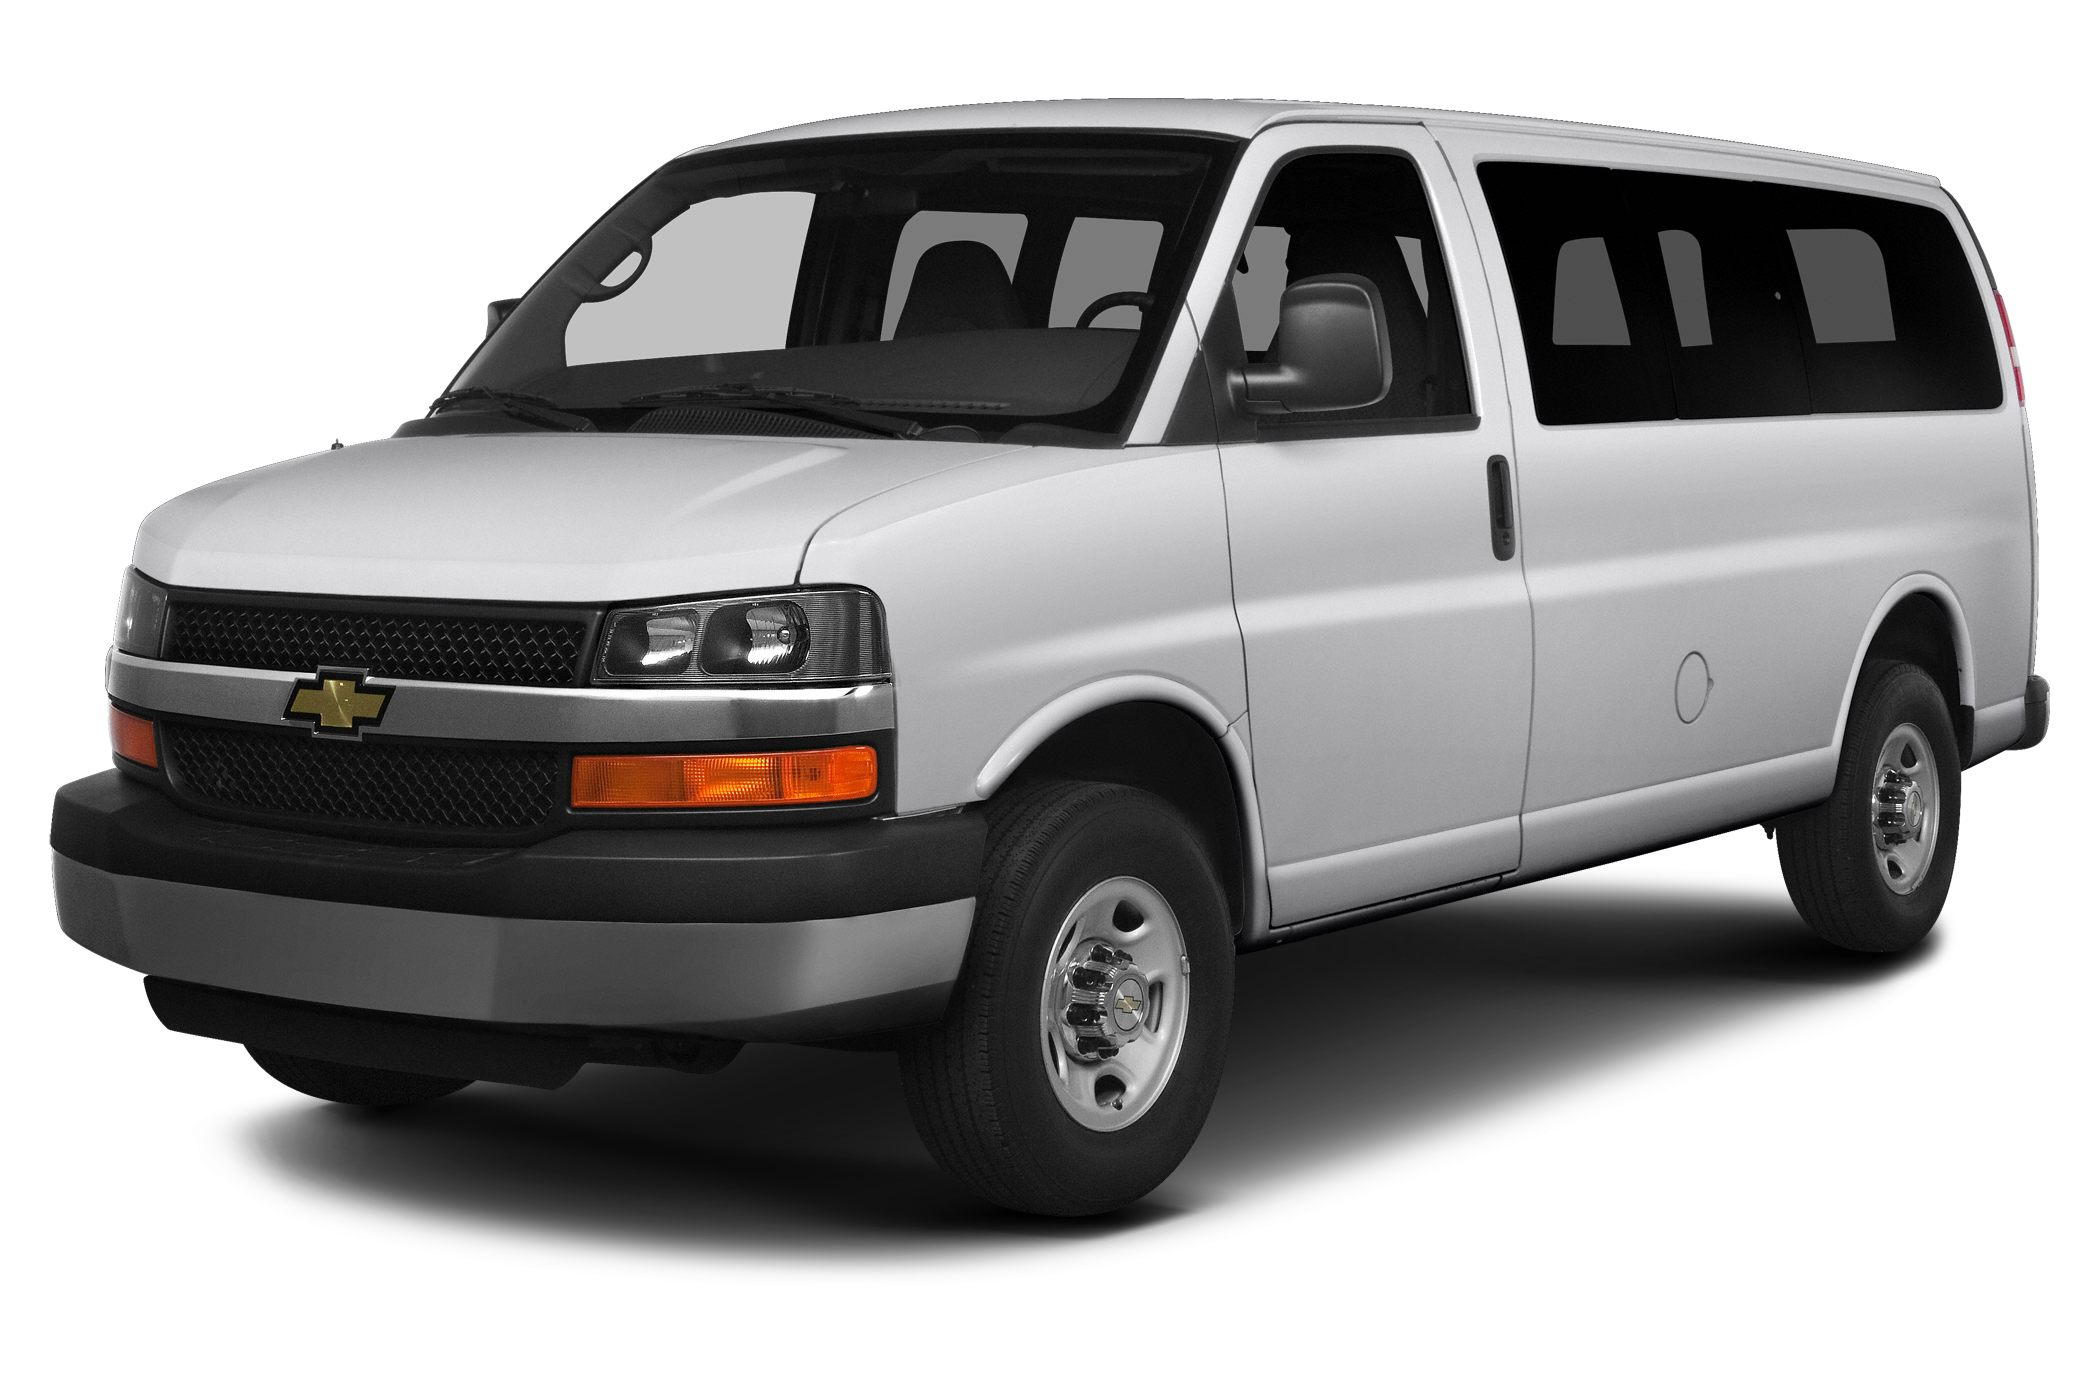 2015 Chevrolet Express 3500 LS Passenger Van for sale in Baltimore for $33,923 with 5 miles.